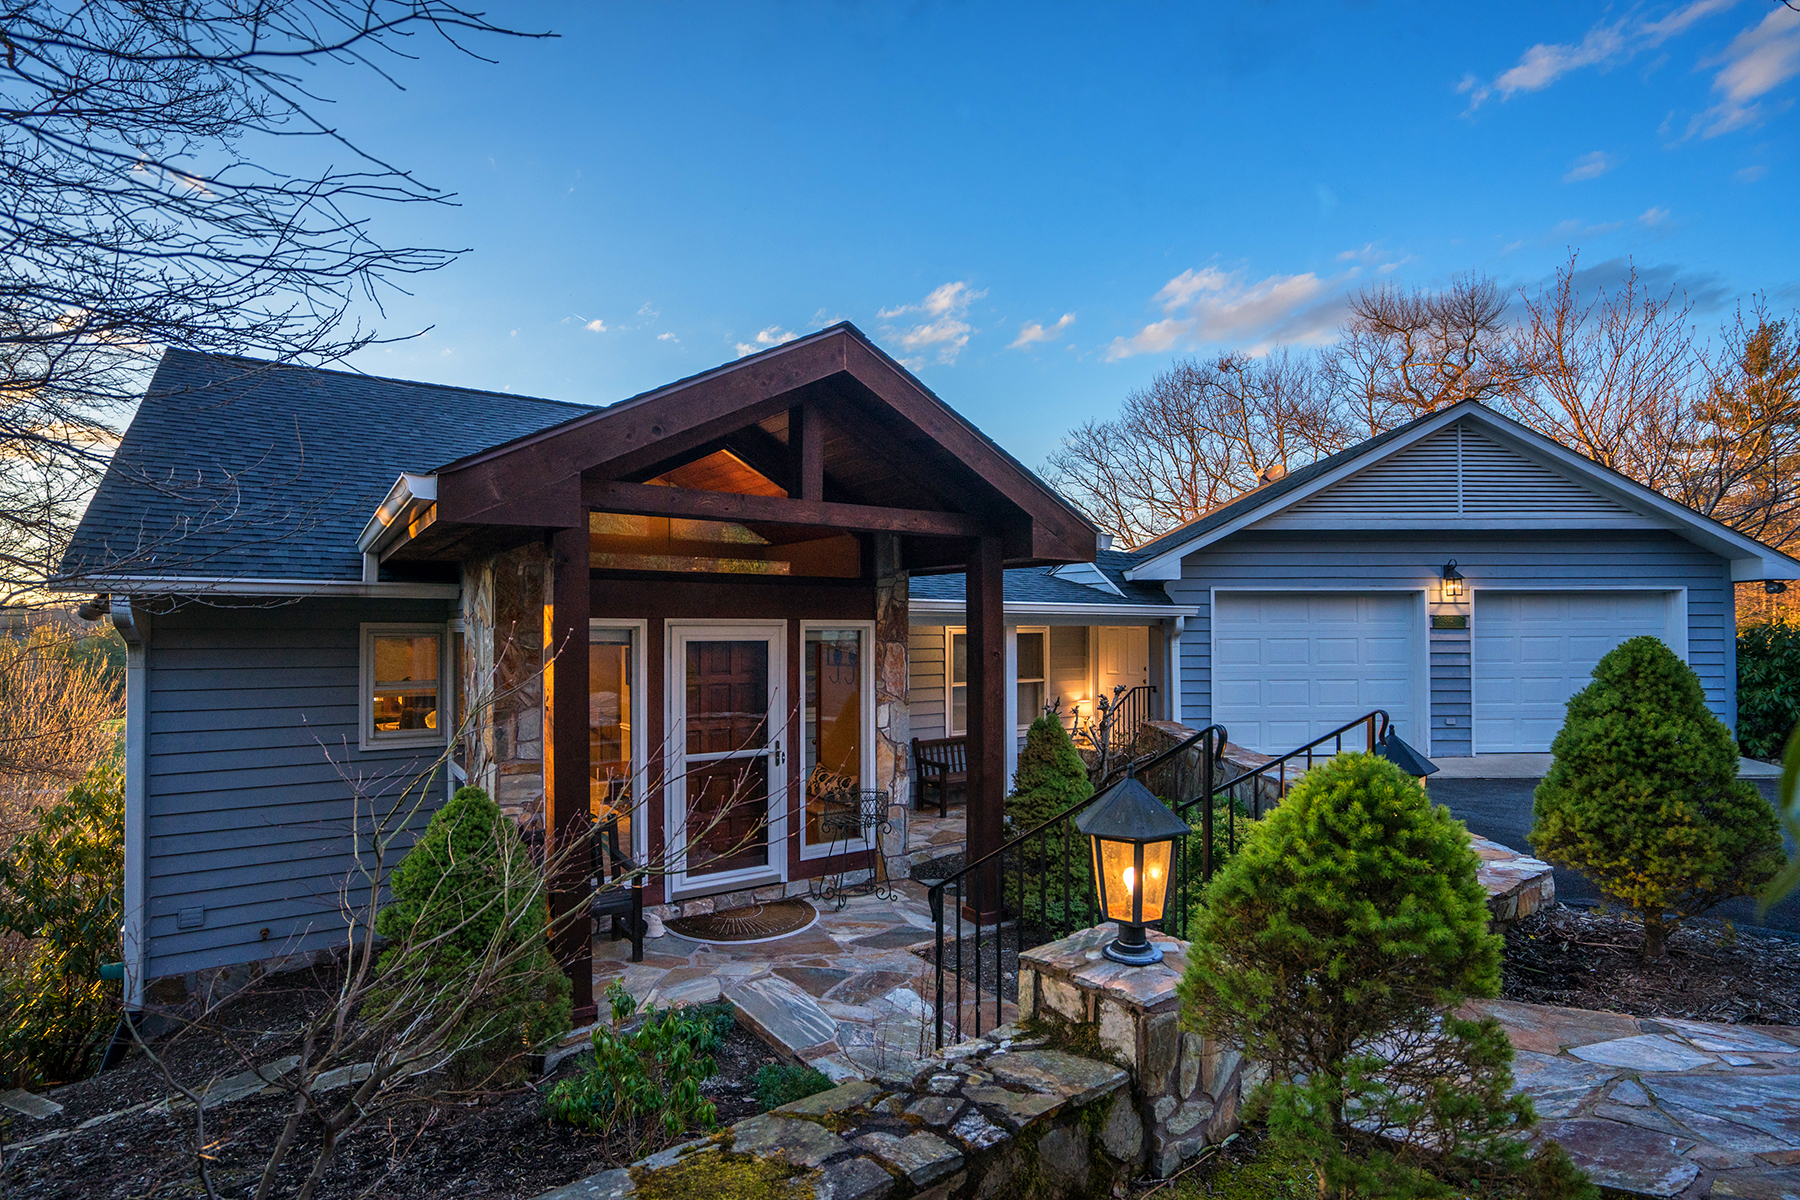 Single Family Home for Sale at BLOWING ROCK 842 Goforth Rd, Blowing Rock, North Carolina 28605 United States